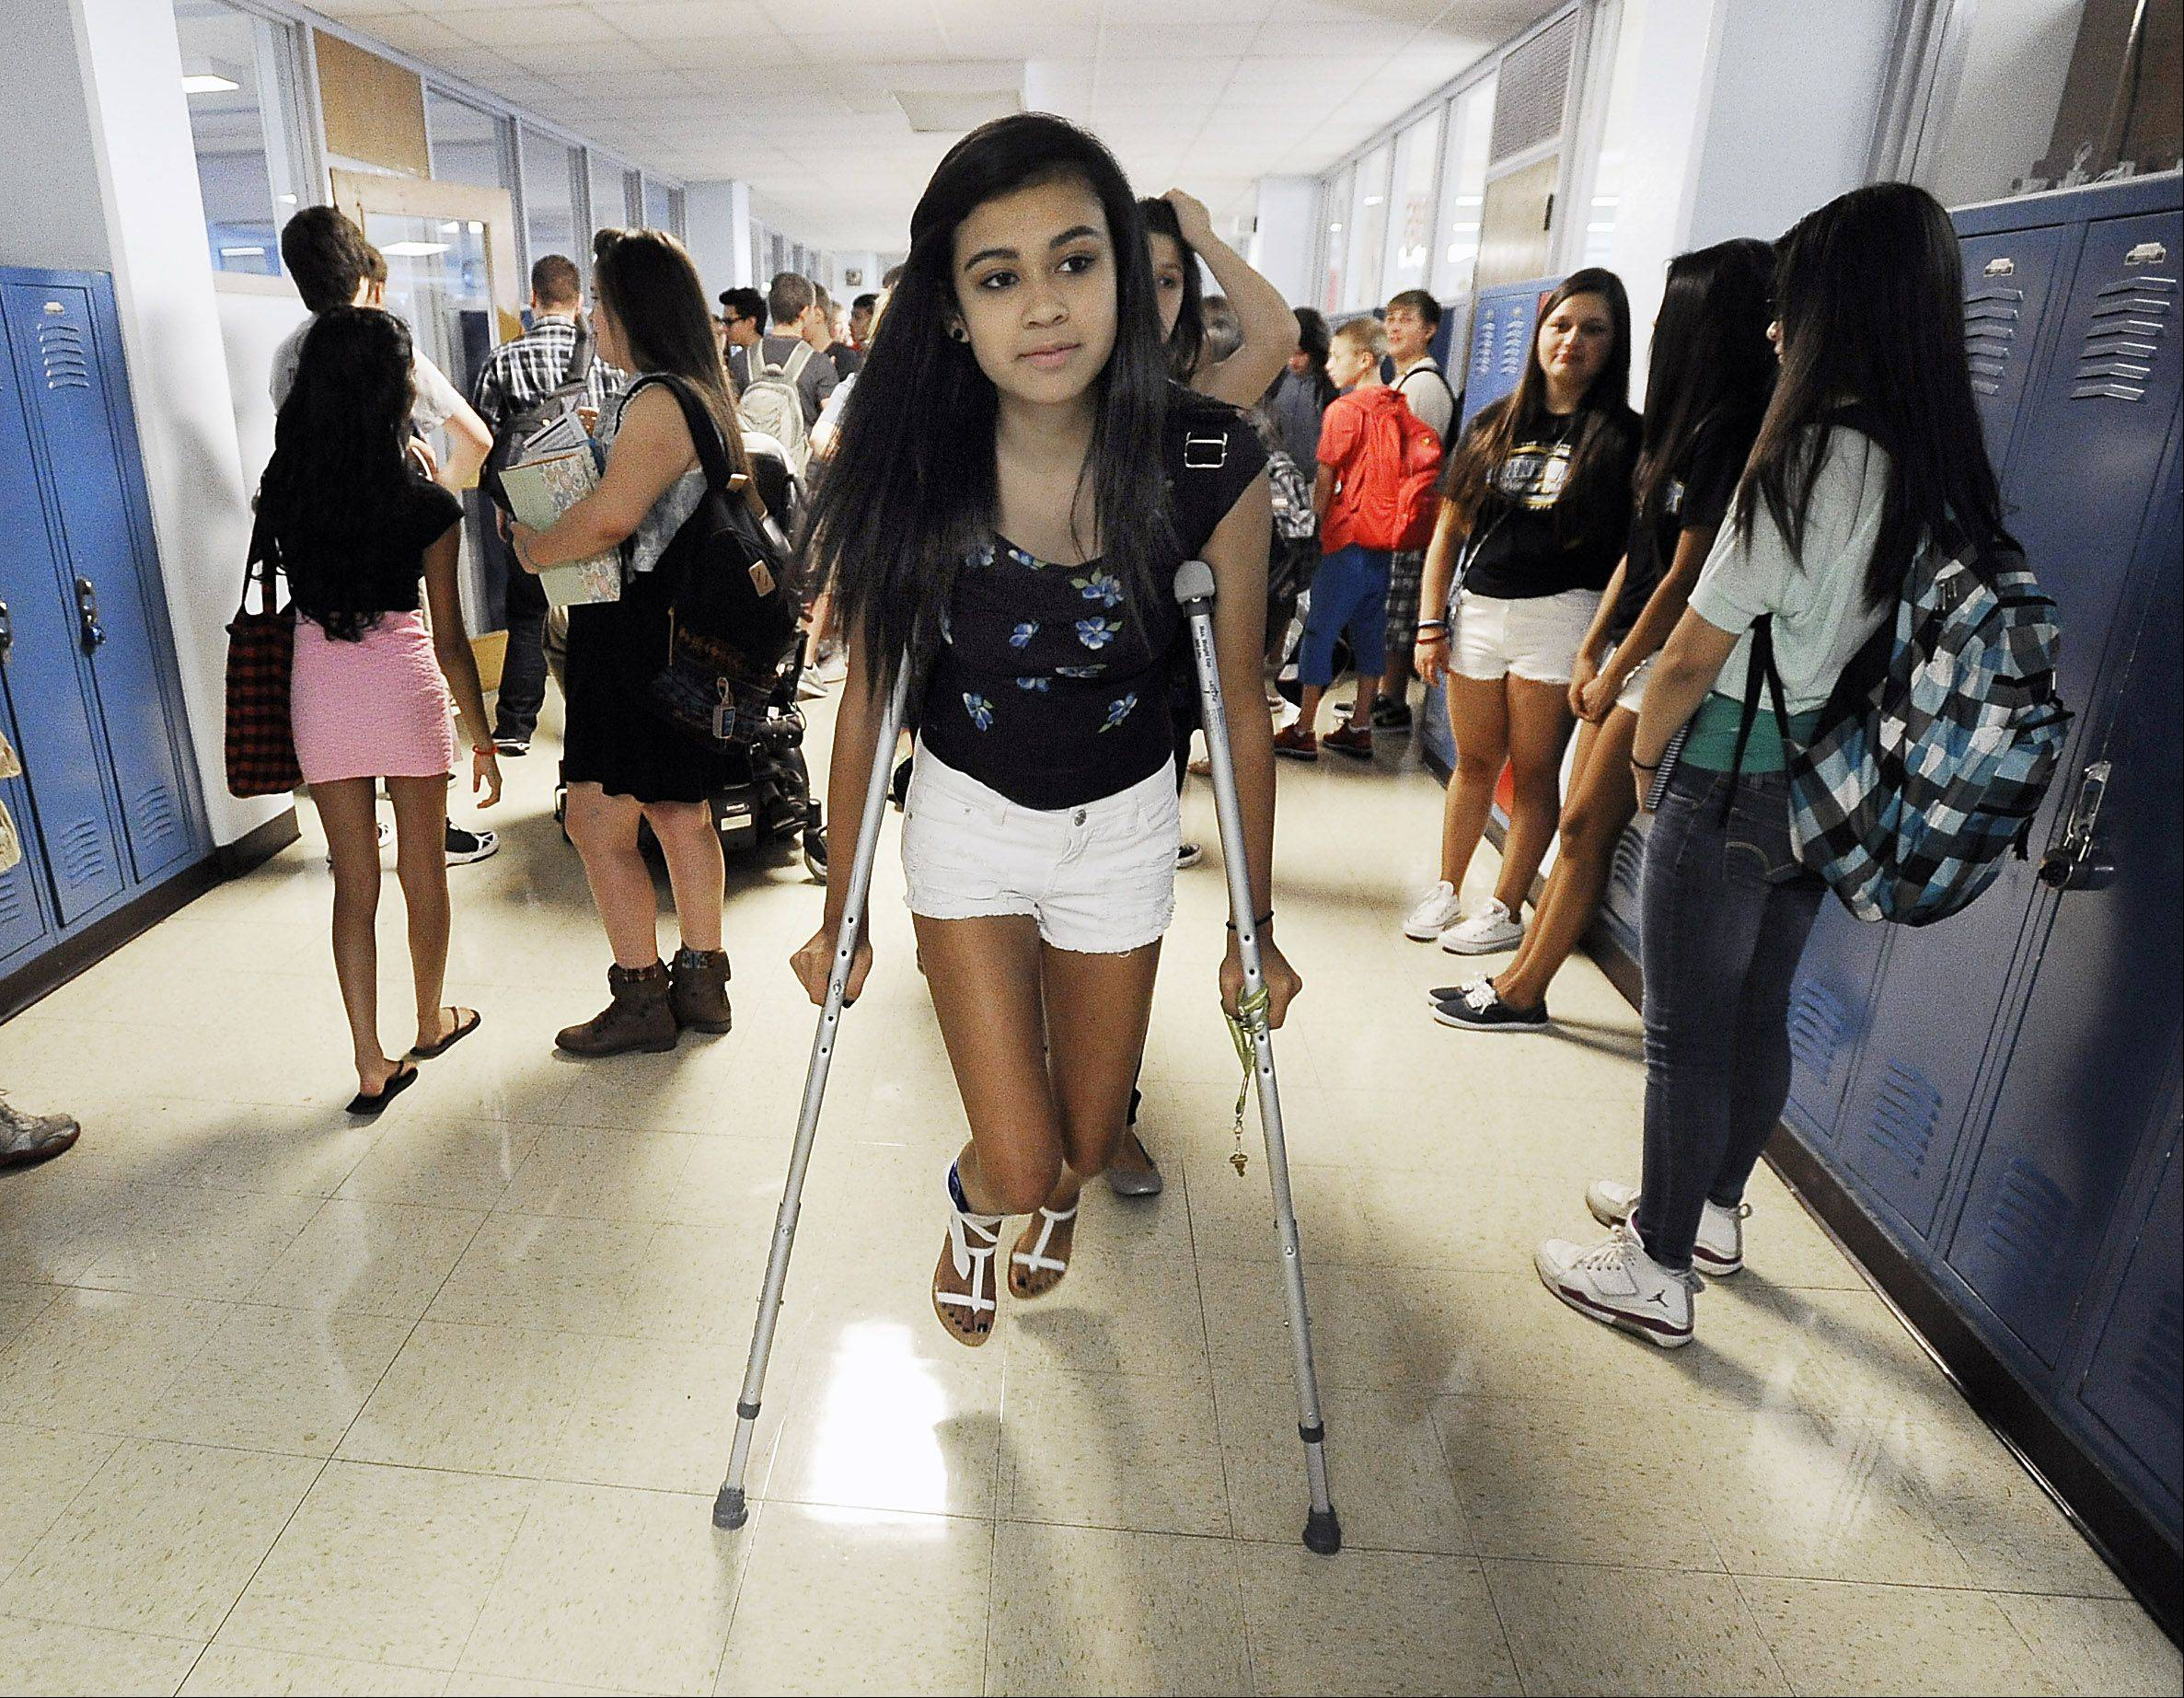 Freshman Aisis Julian, 14, has a tough start to her first day back to school at Maine West High School, maneuvering through a hallway full of classmates after having injured her ankle in volleyball tryouts.